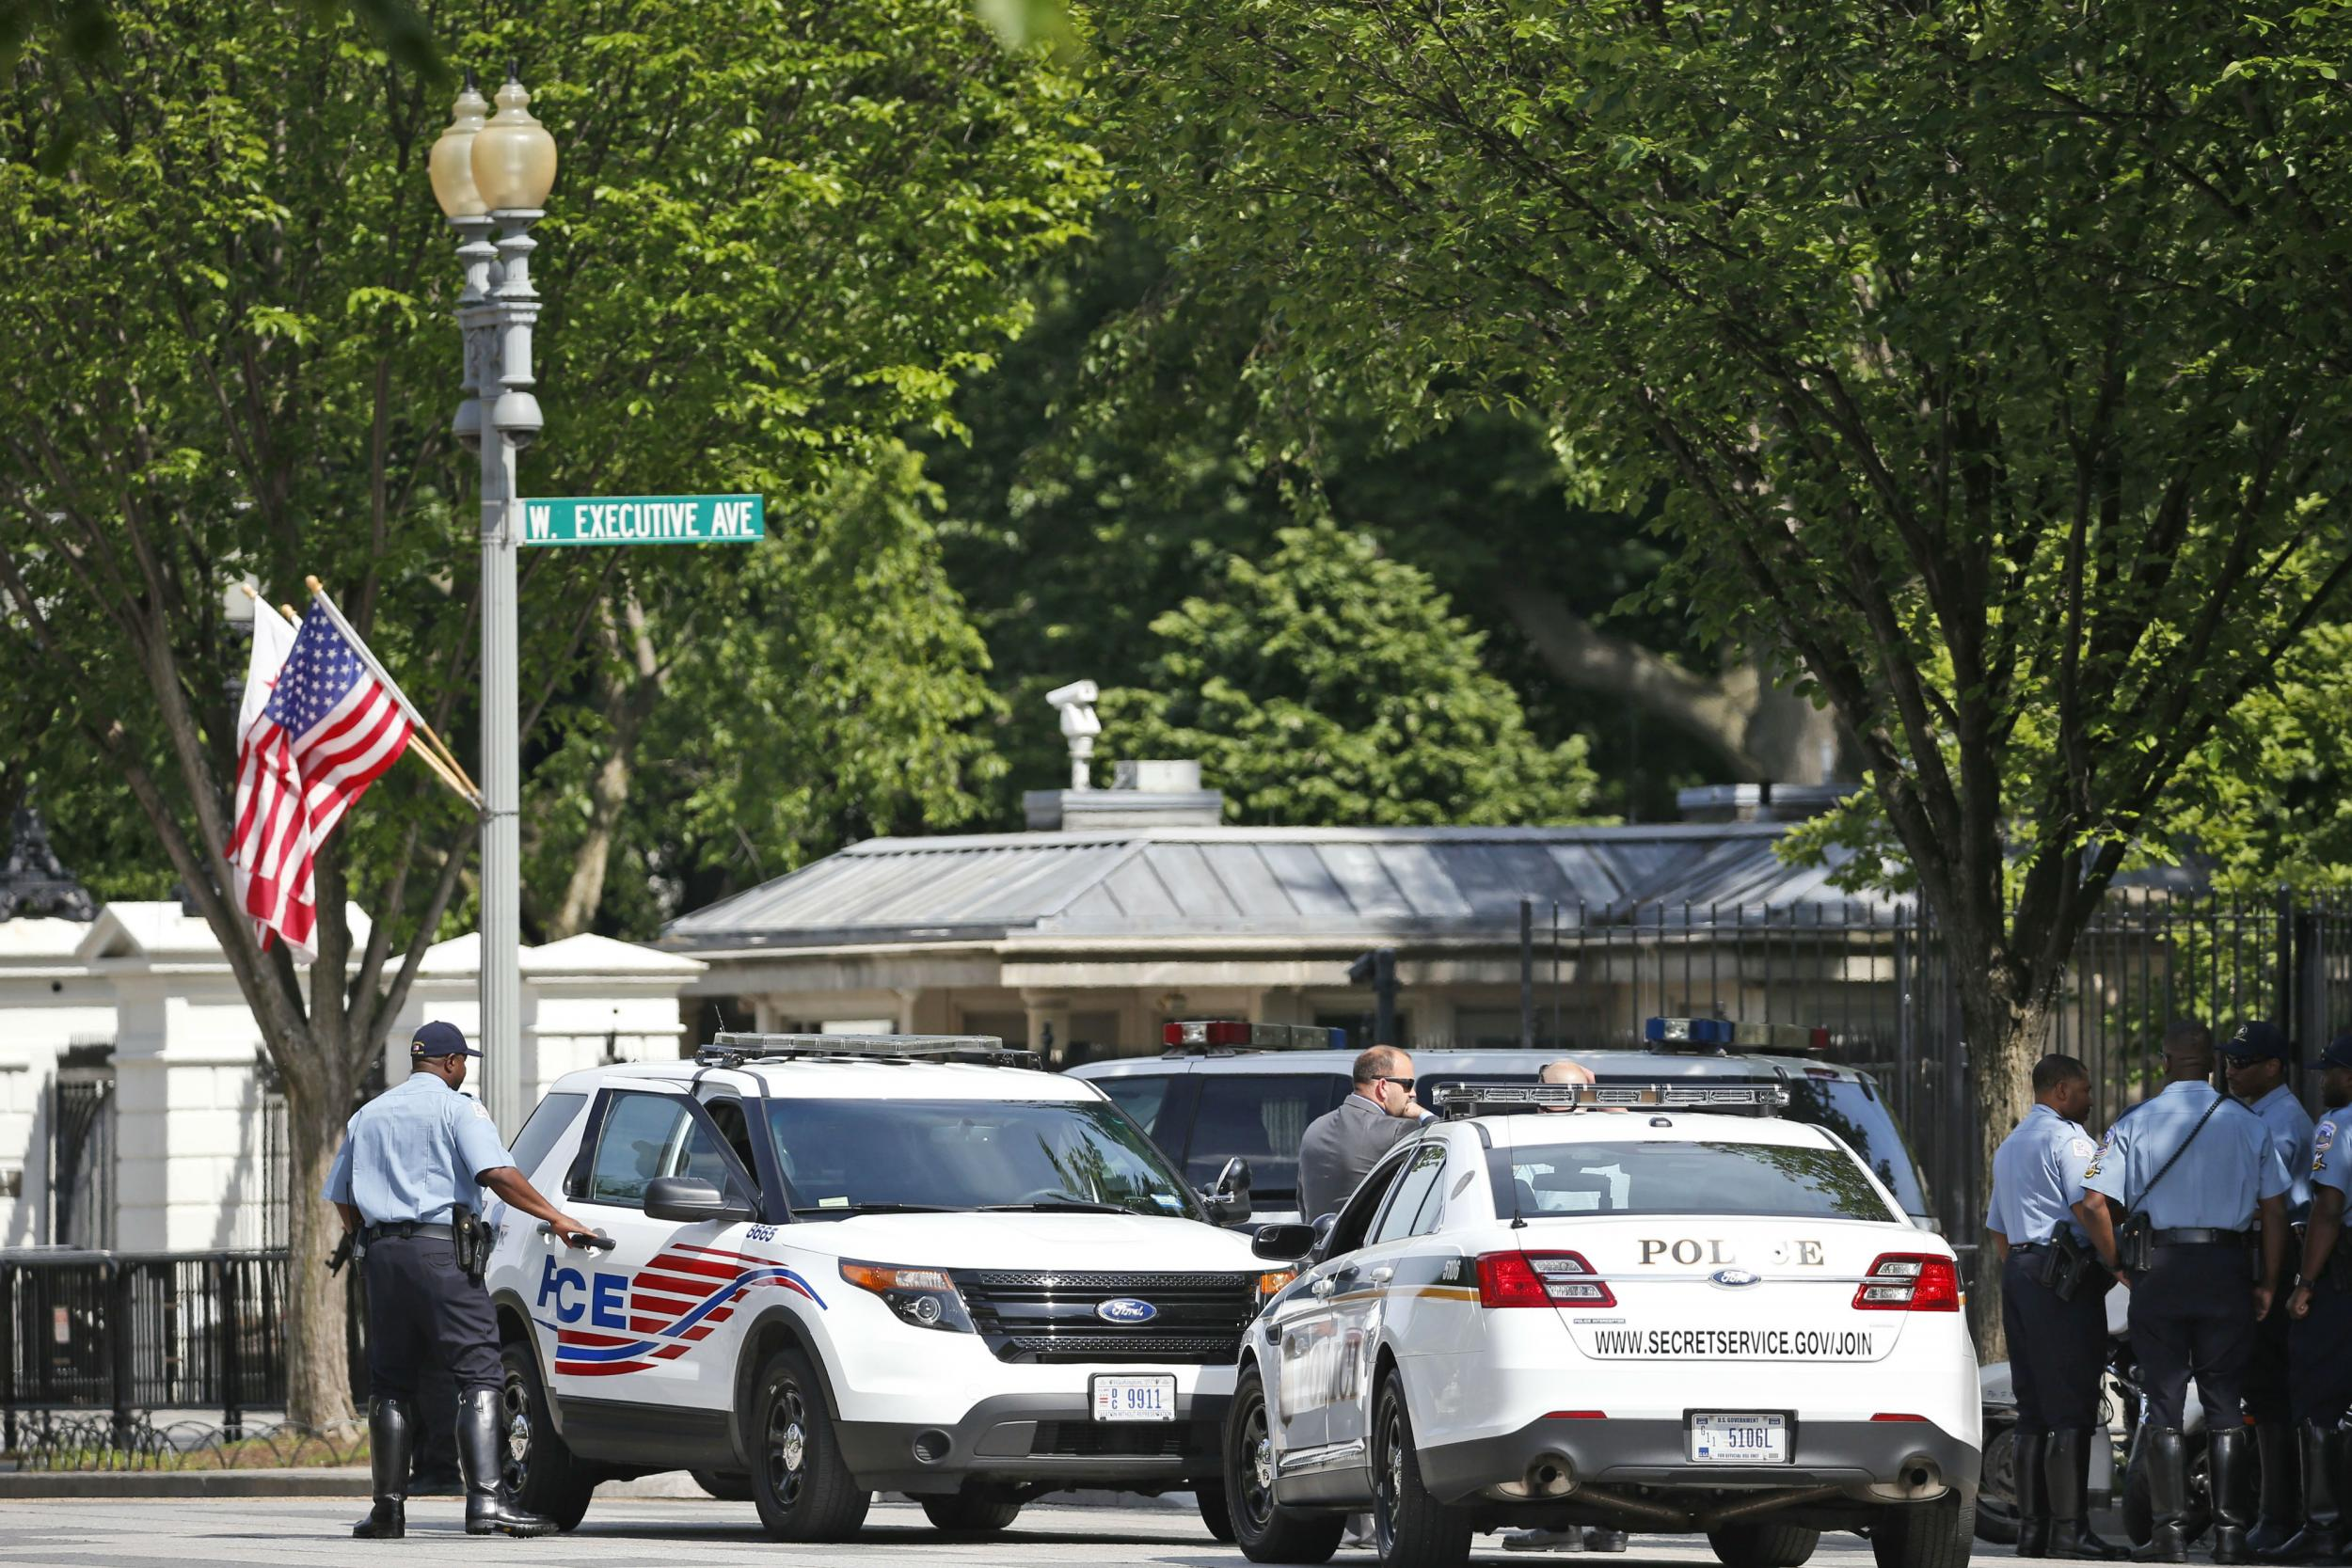 Suspect in custody after active shooting at the White House